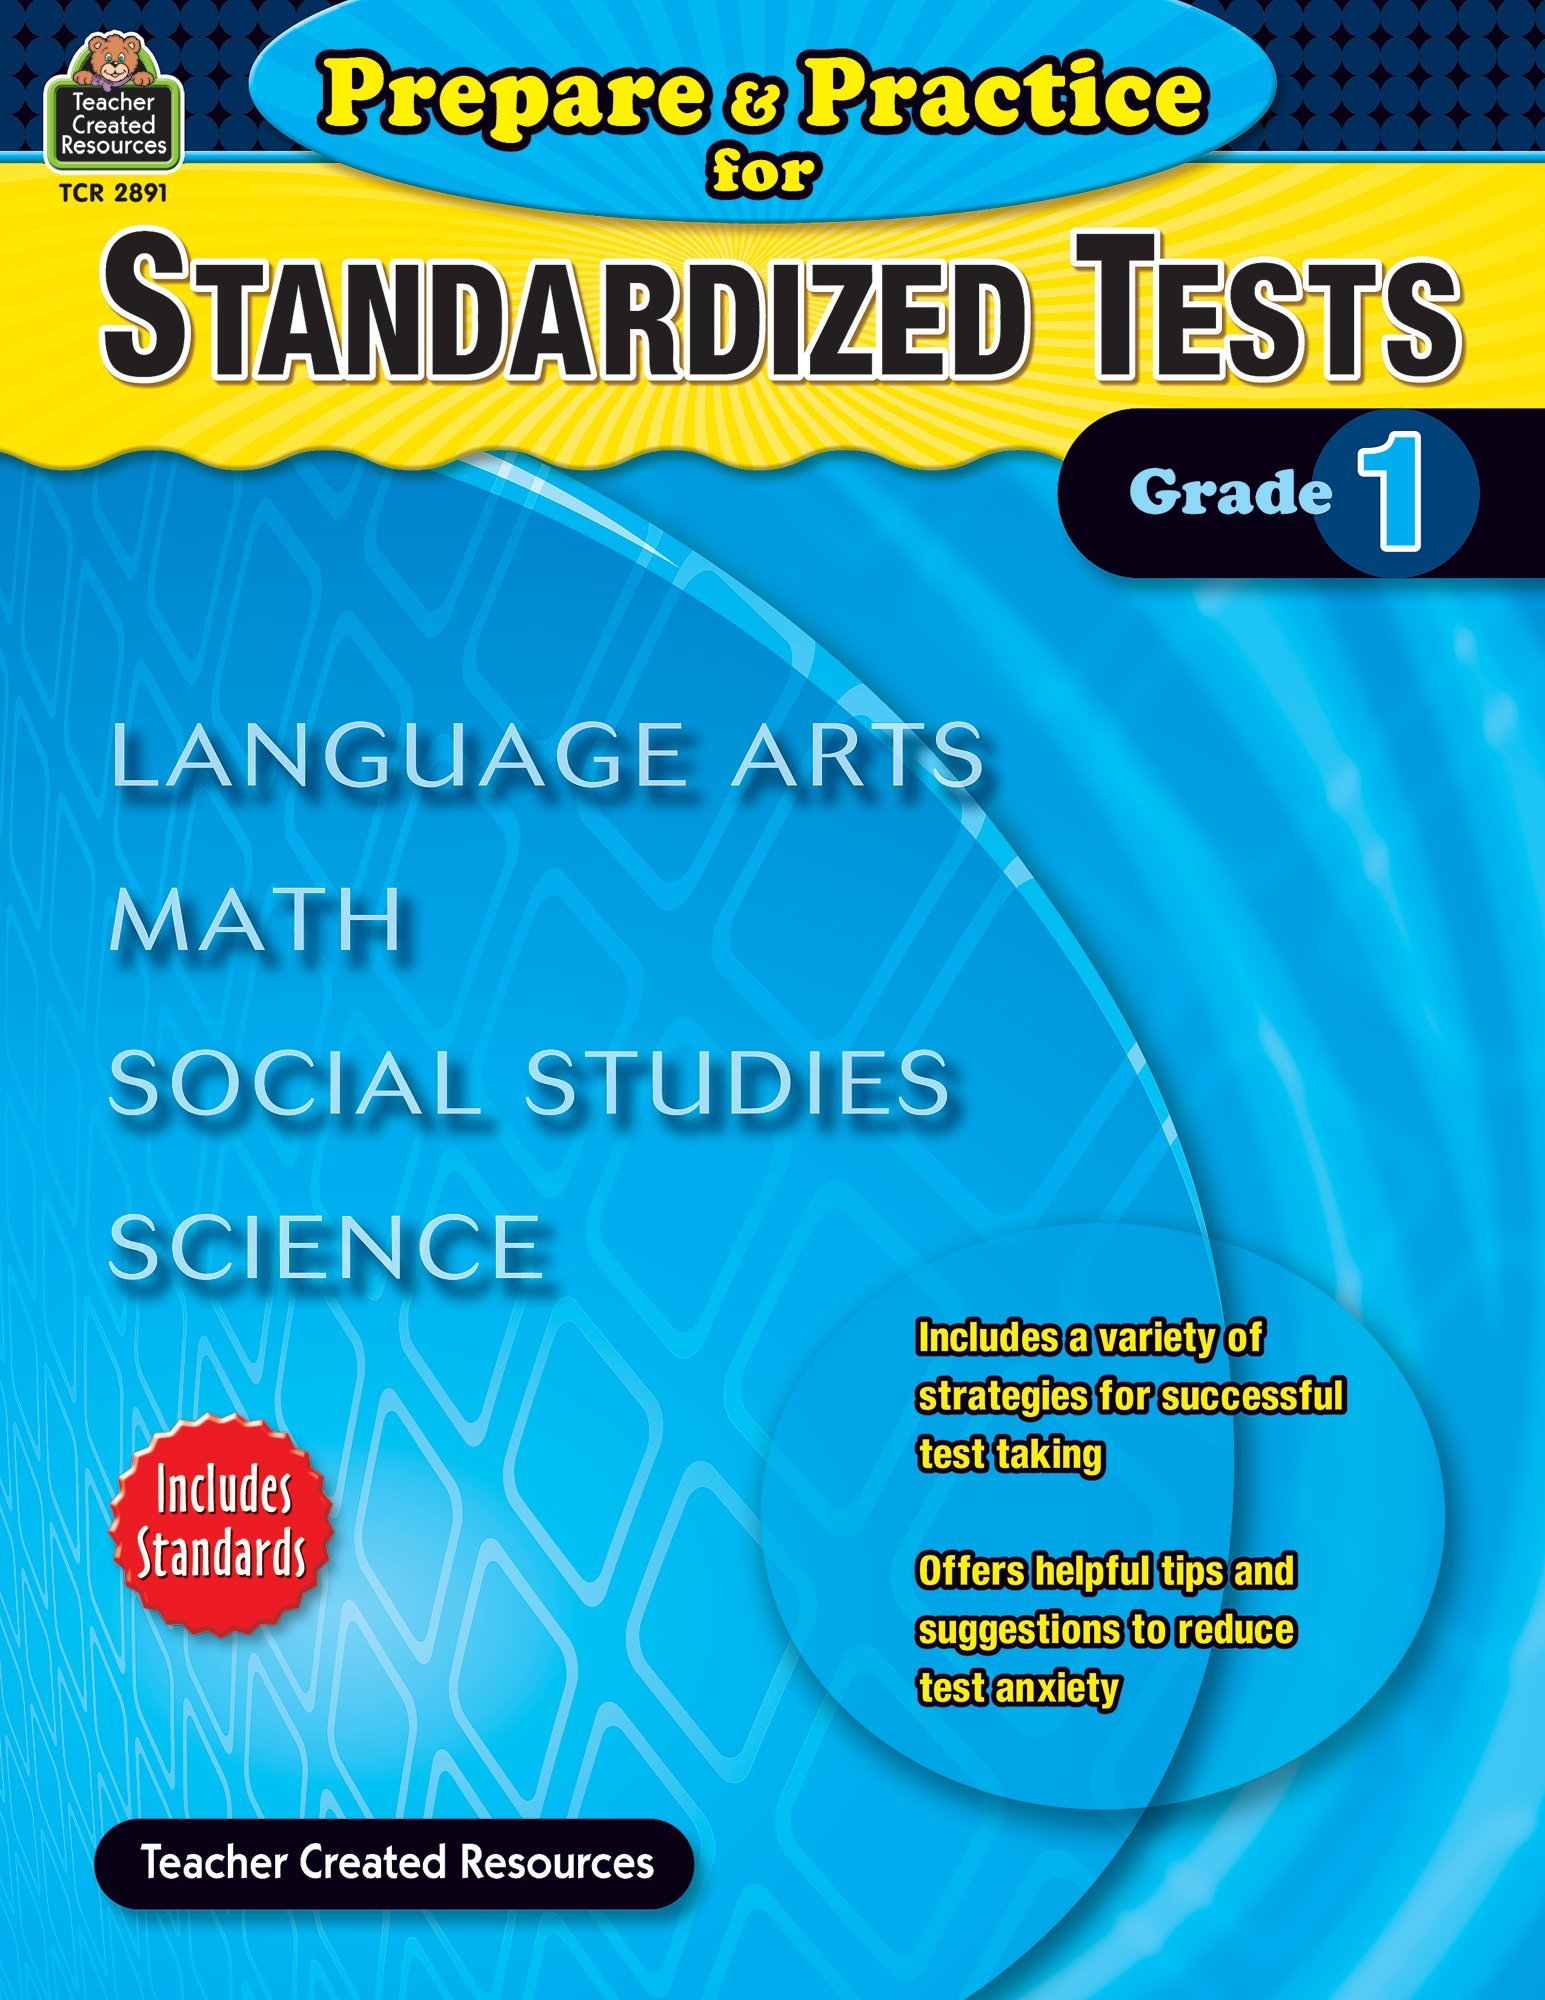 Prepare & Practice for Standardized Tests Grade 1 (Prepare and Practice for Standardized Tests) by Teacher Created Resources